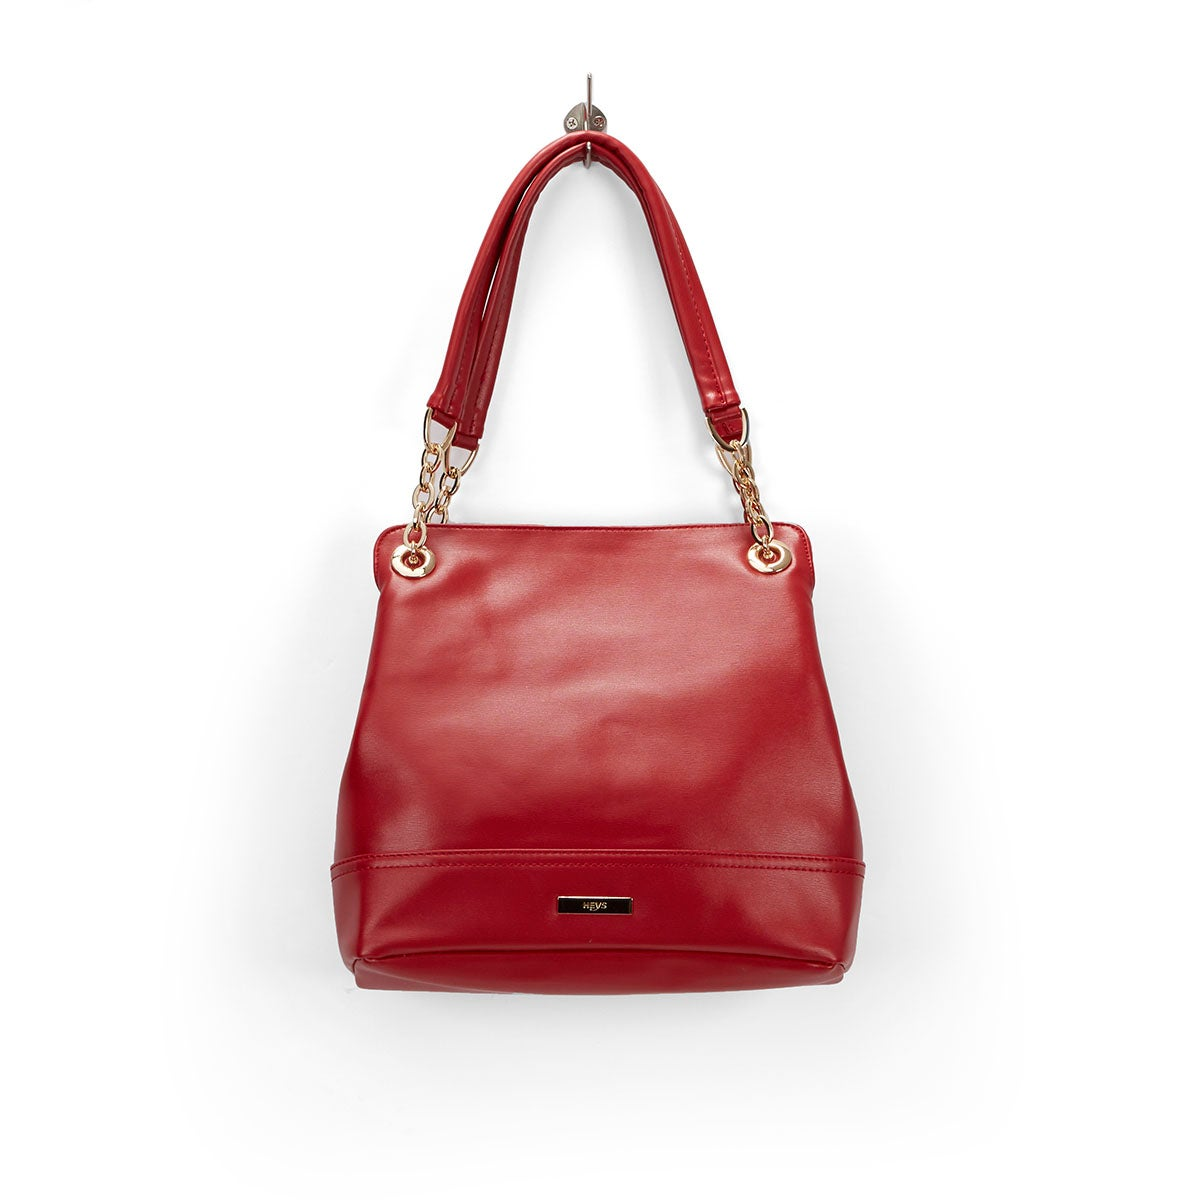 Lds Chain red double strap shoulder bag